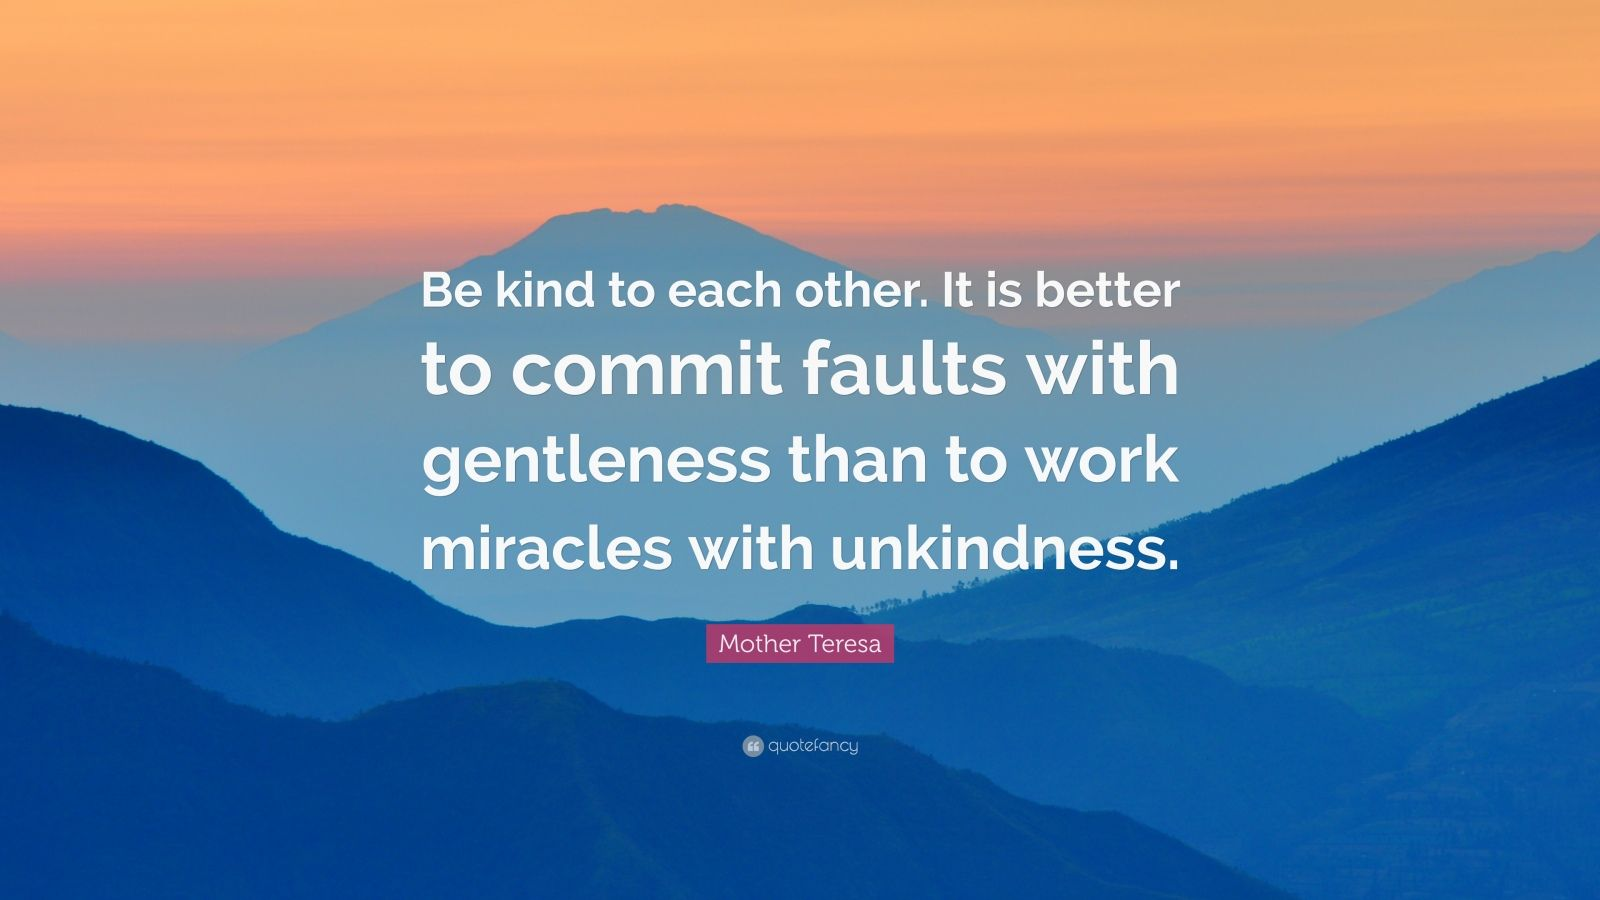 """Mother Teresa Quote: """"Be kind to each other. It is better to commit faults with gentleness than to work miracles with unkindness."""""""